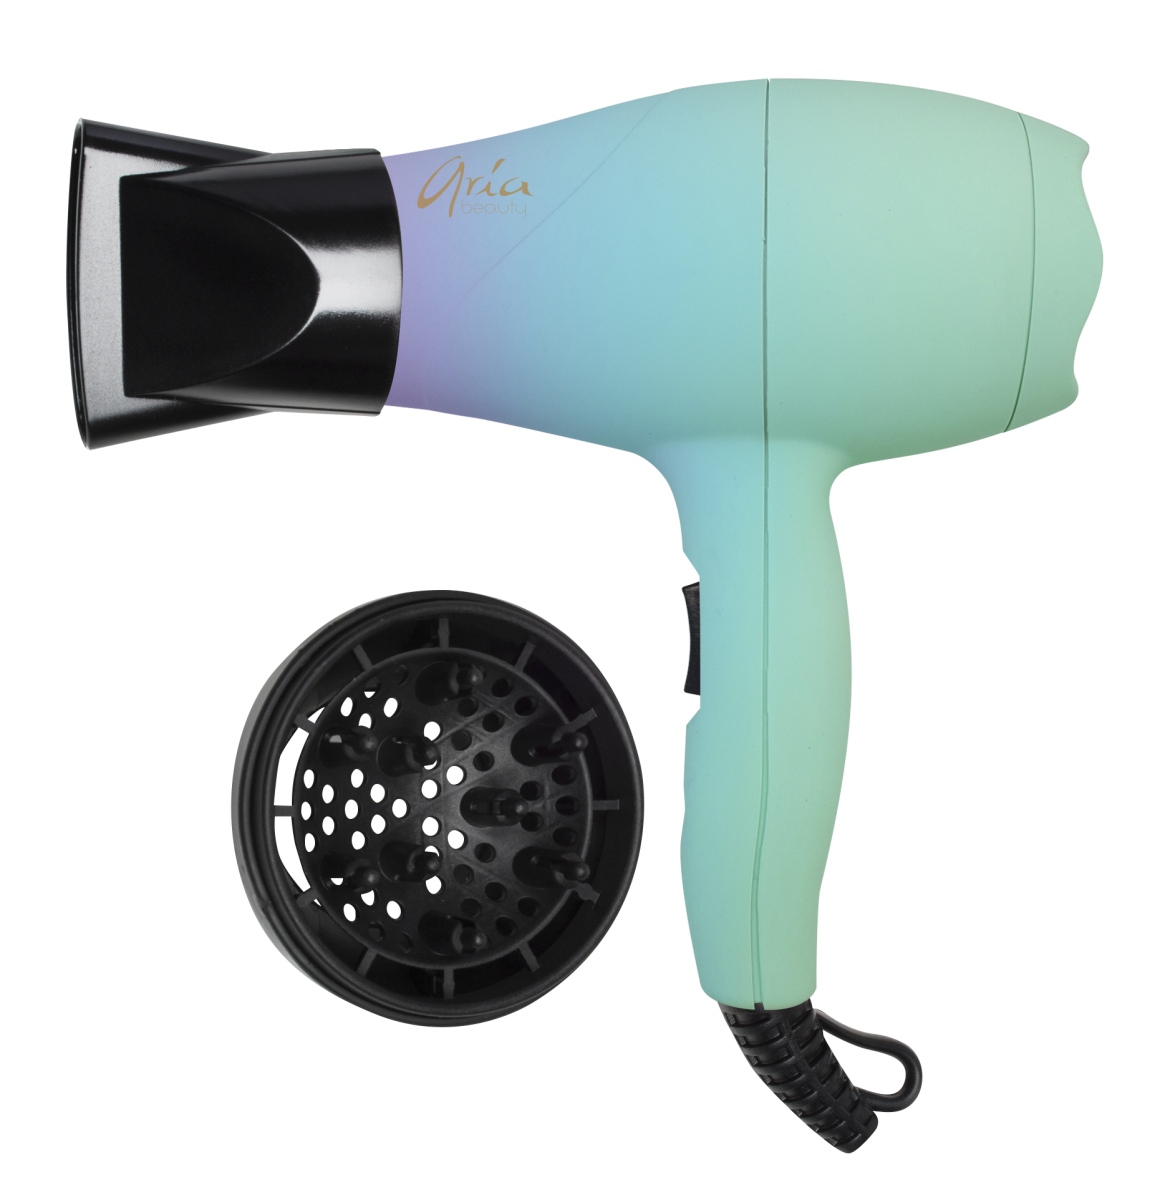 Aria Mini Unicorn Dryer, $69.99, available here.